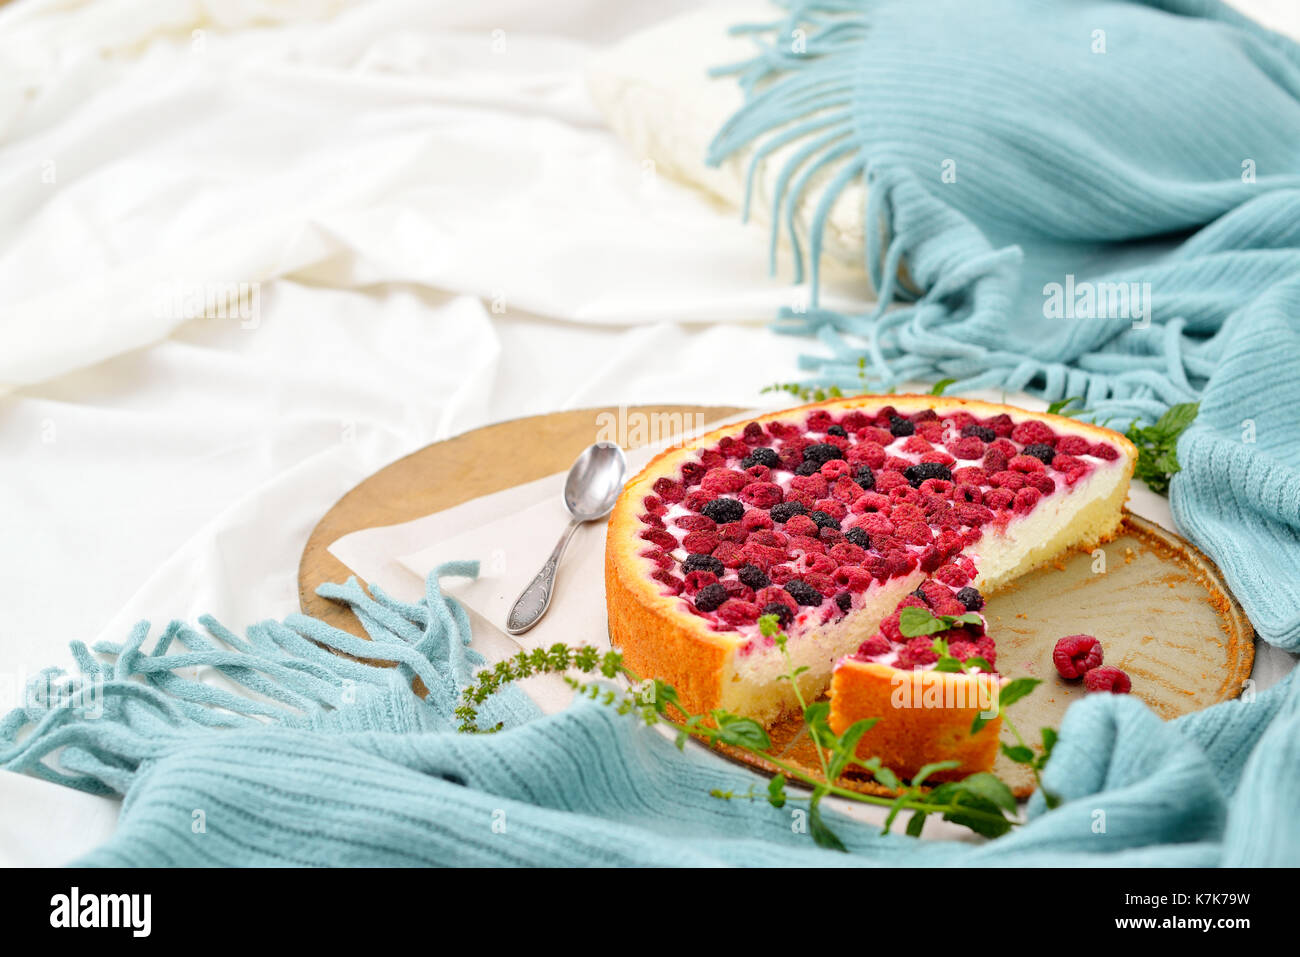 Flat lay breakfast in bed with raspberry cheesecake, mint tea . Window light, space for text blog, posts - Stock Image